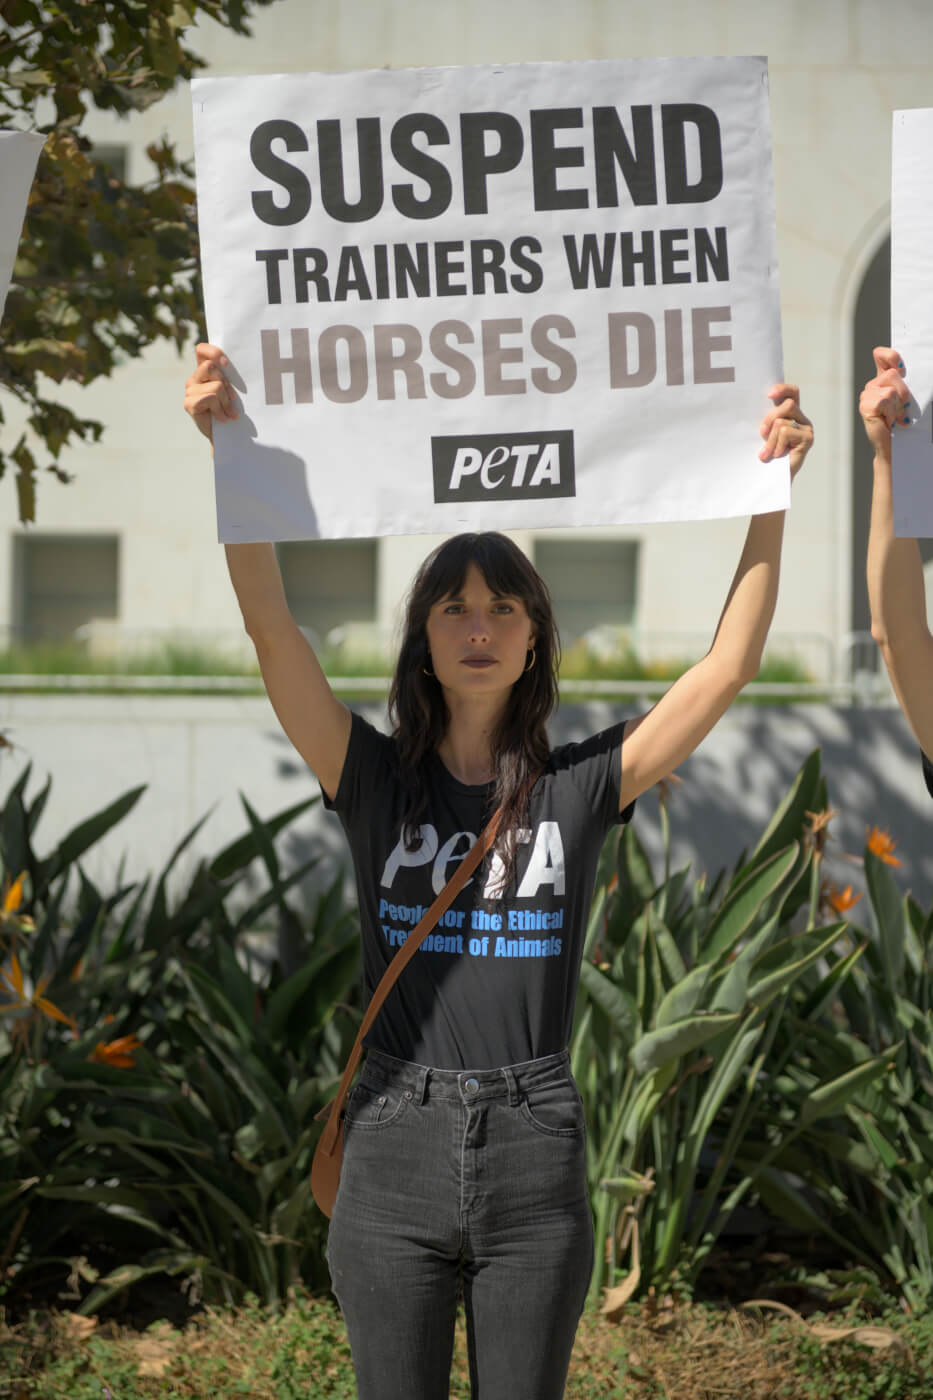 these 10 simple new racetrack rules from PETA will save lives